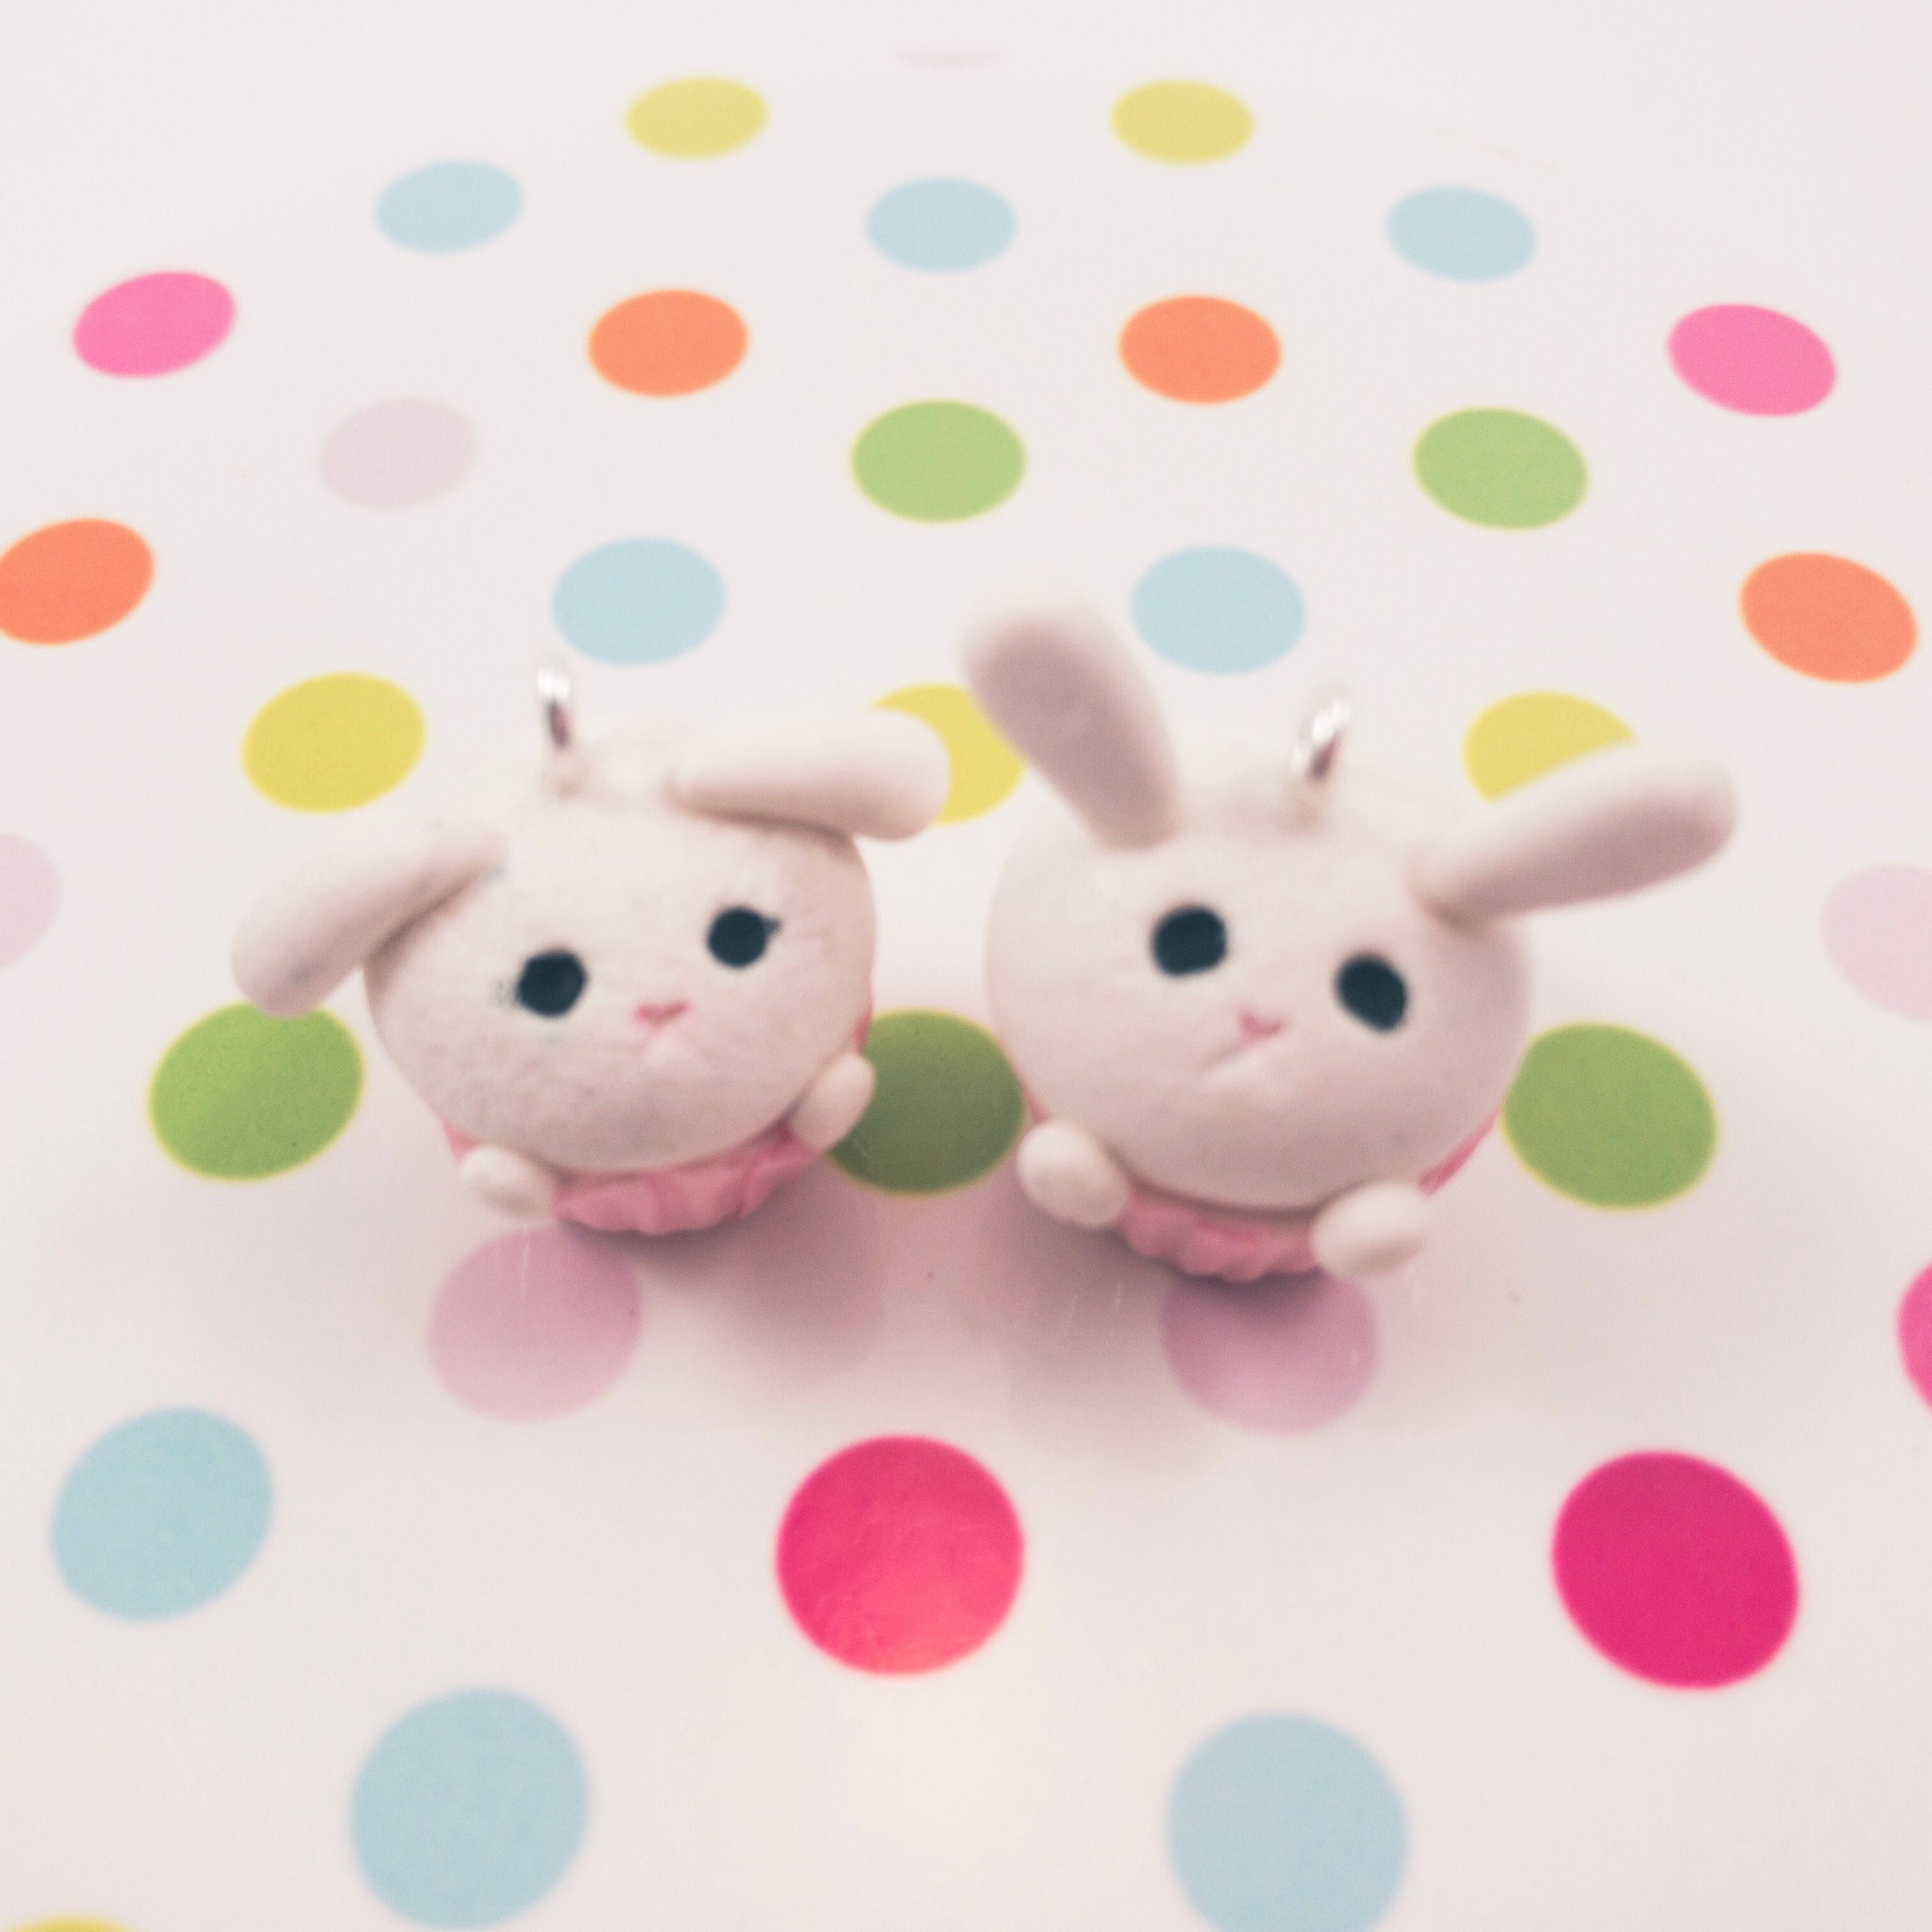 fireflyFrippery Bunny Cupcake Charm or Sculpture on Polka Dot Background